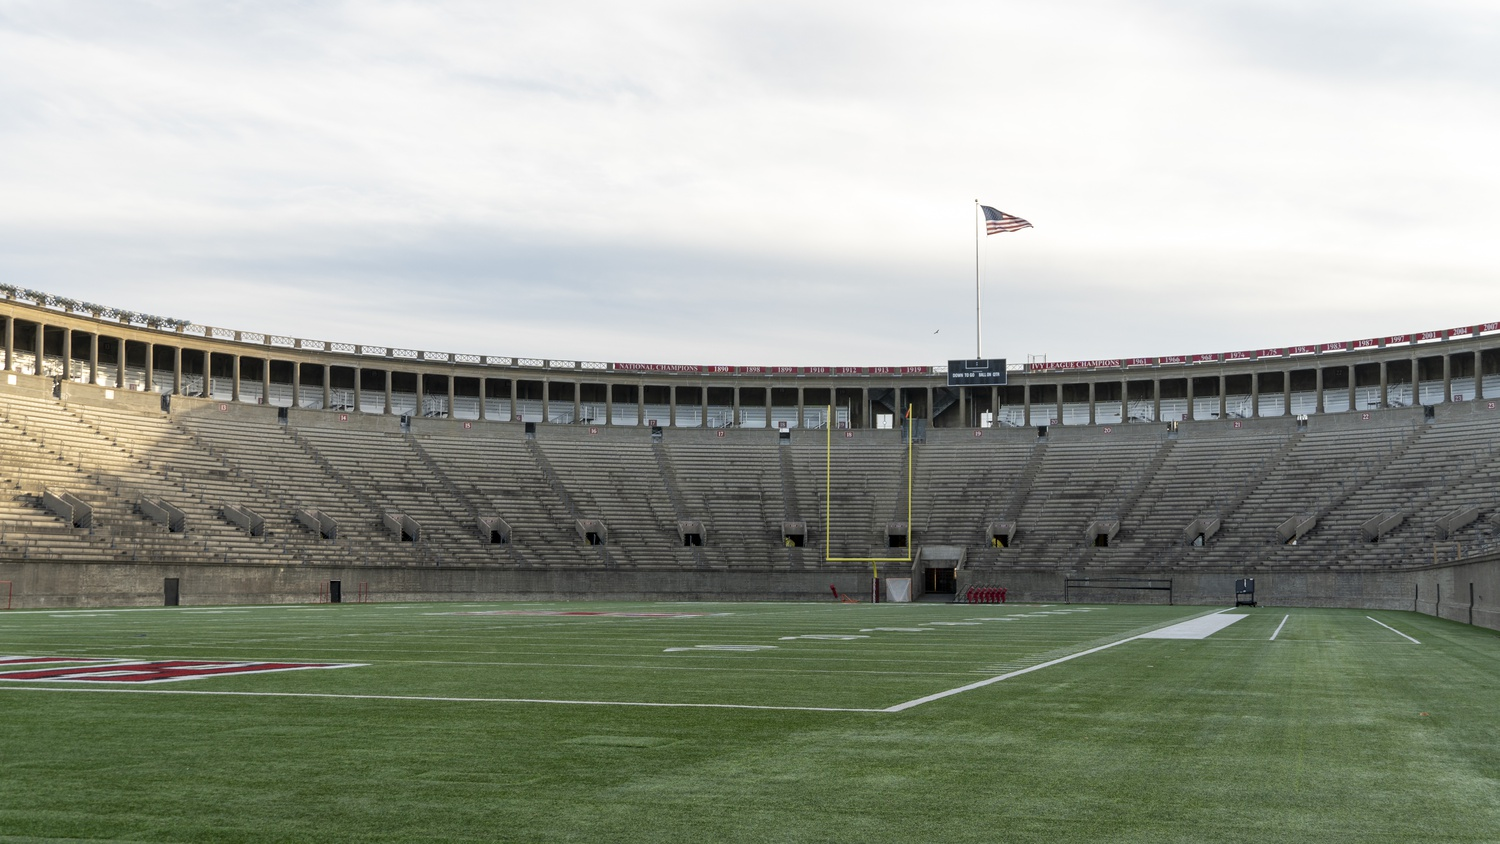 The Ivy League cancelled its spring sports season Thursday due to the coronavirus pandemic.